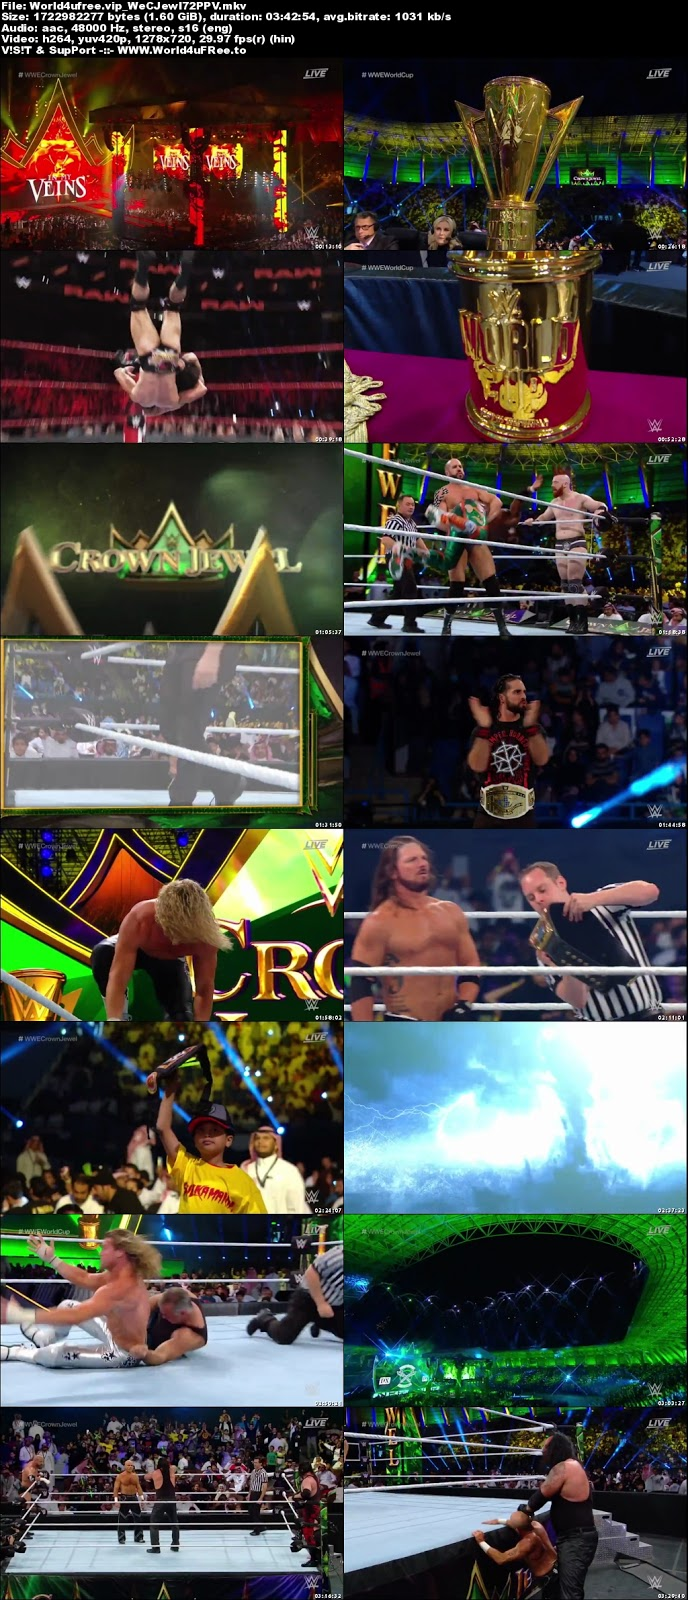 WWE Crown Jewel 2018 PPV 720p WEBRip 1.6Gb x264 Download tv show WWE Crown Jewel 2018 PPV 1.6Gb 720p compressed small size free download or watch online at world4ufree.vip